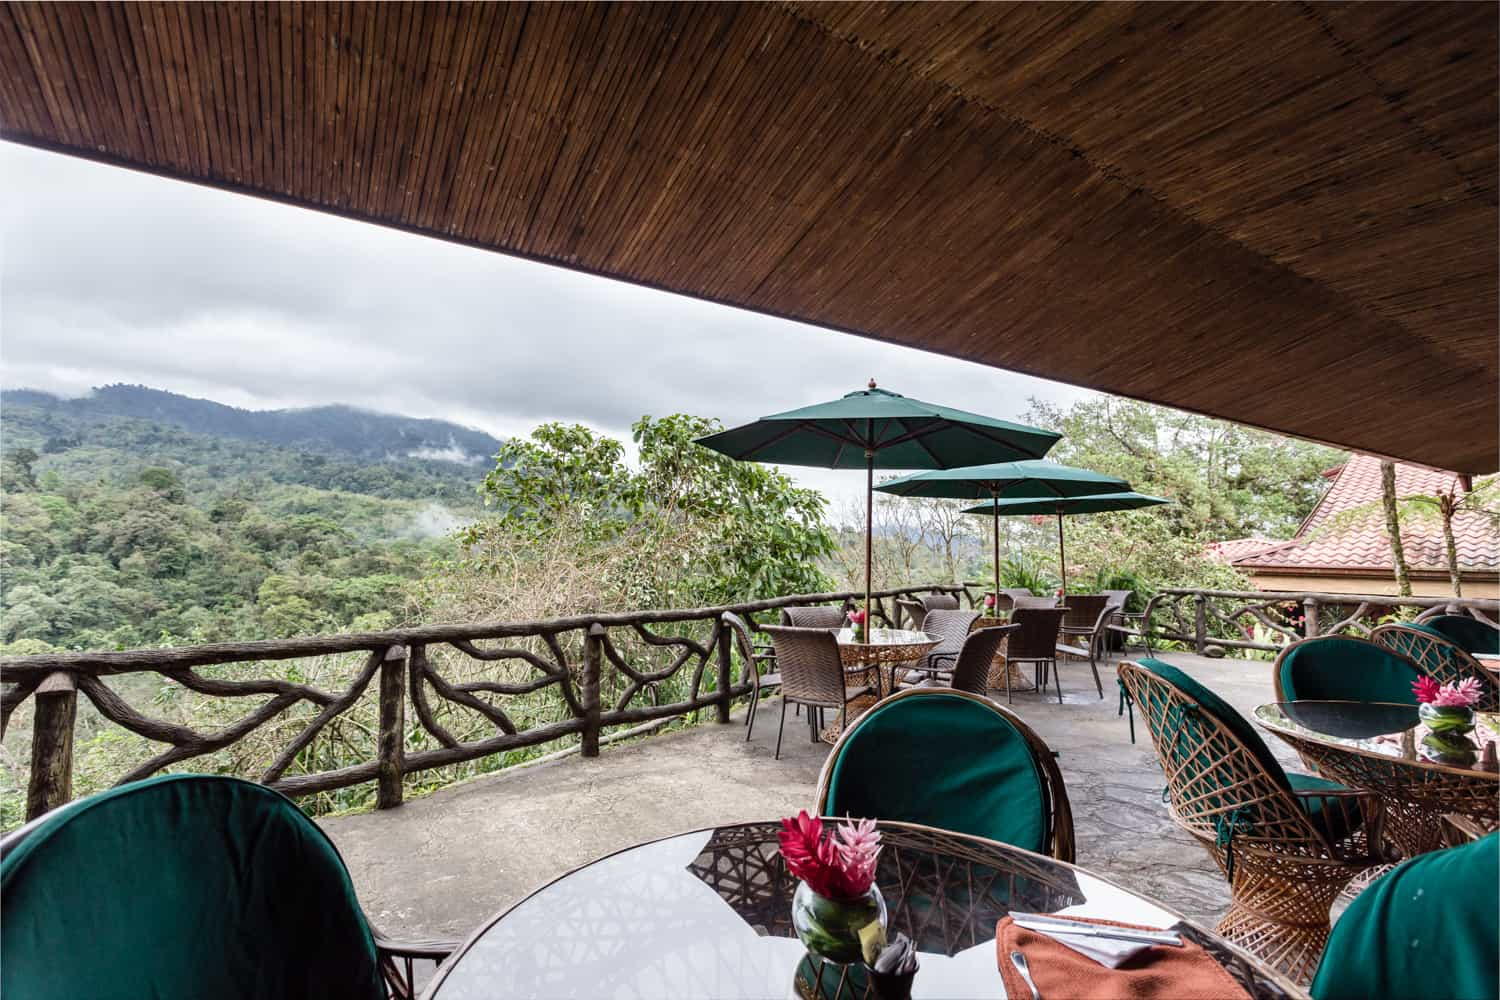 Uncovered terrace overlooking Poas Volcano and cloud forest at La Paz Waterfall Gardens.